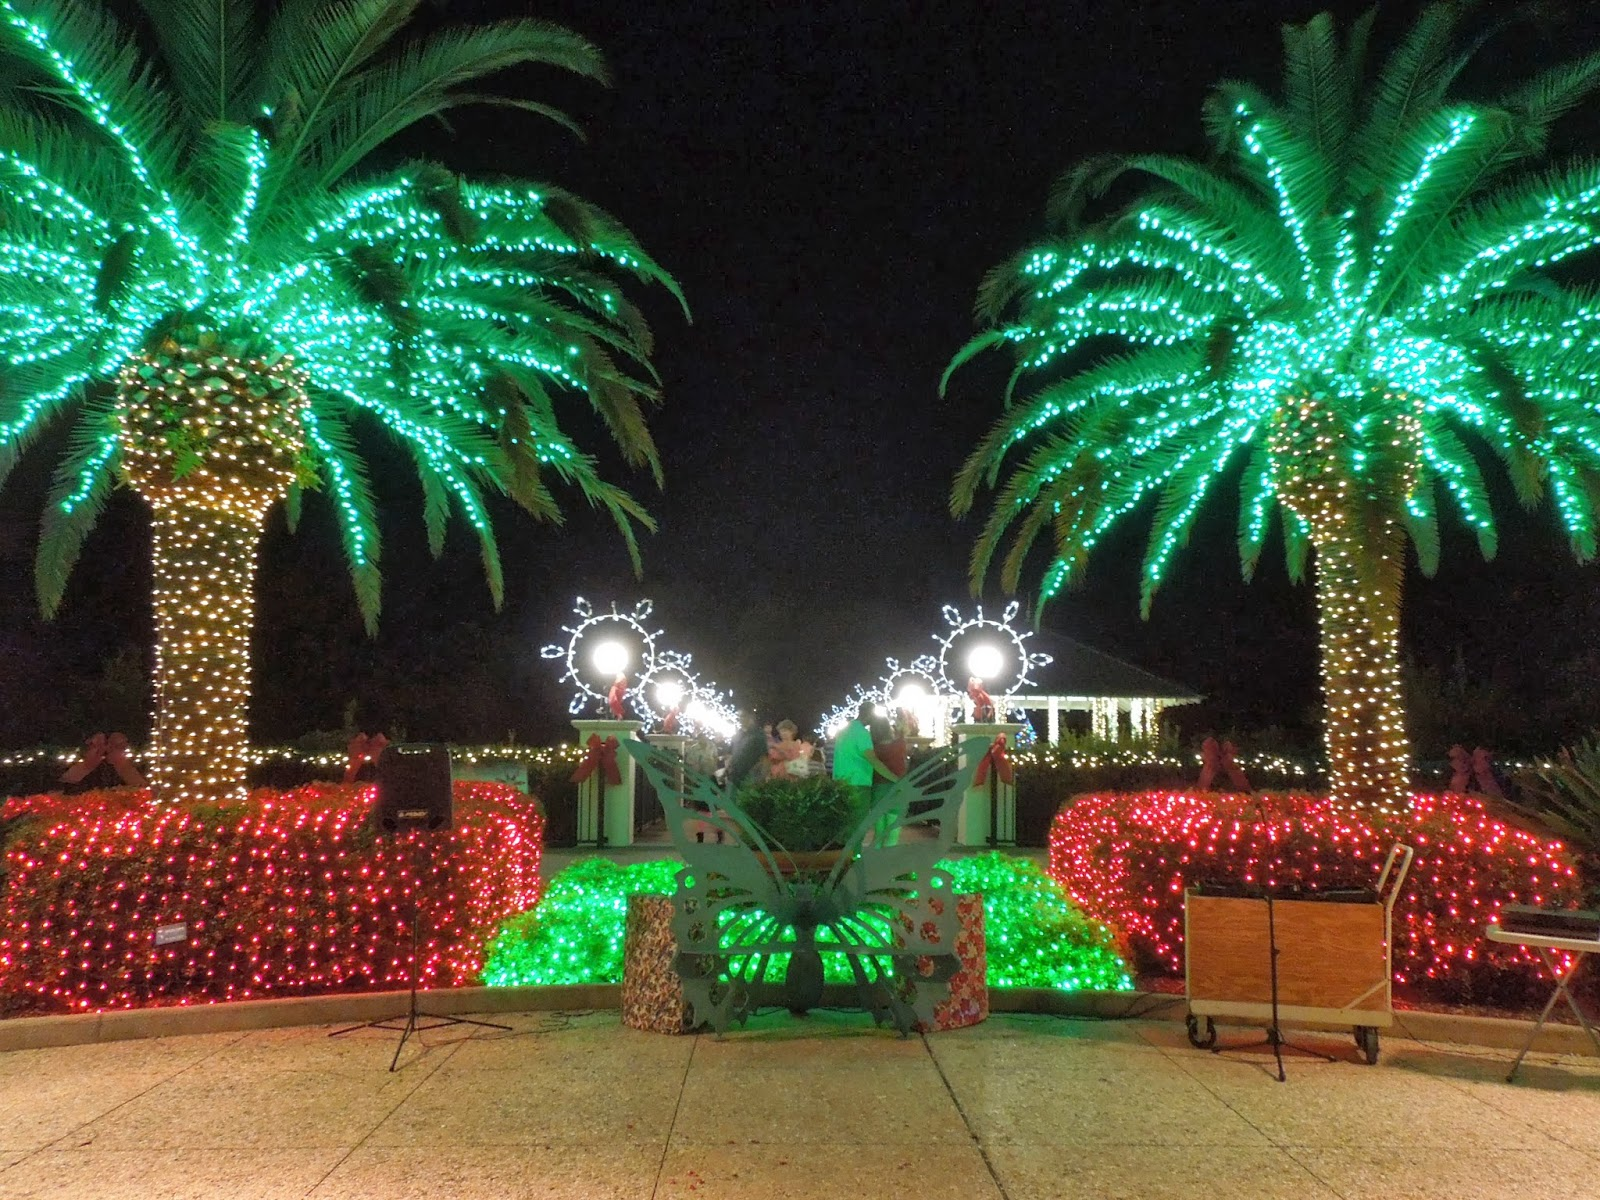 Sweet Escapes: Christmas In The Gardens